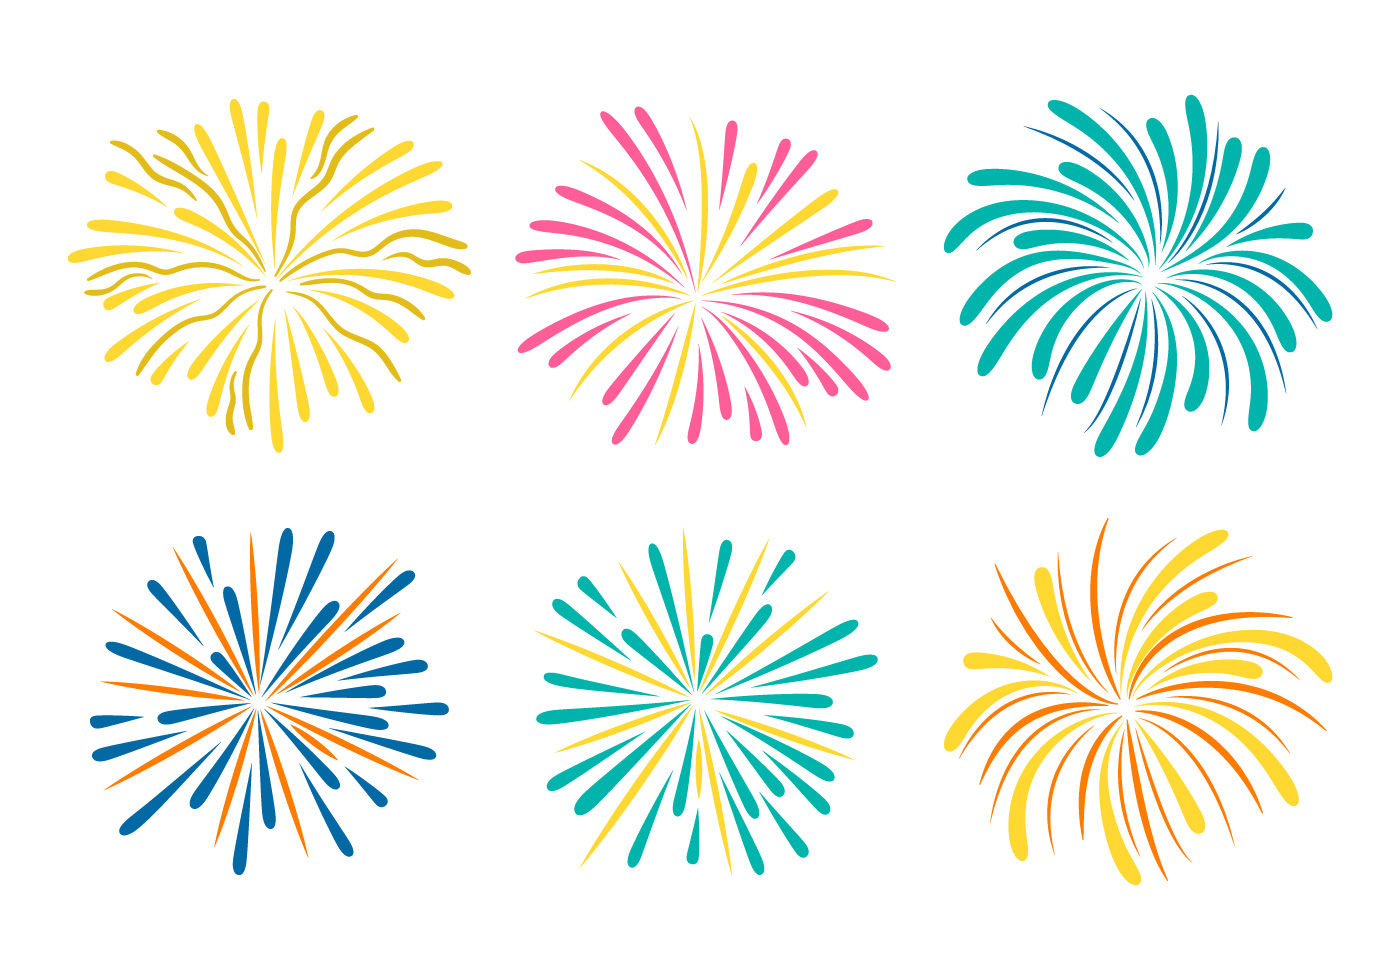 Fireworks Free Vector Art - (36,458 Free Downloads)Fireworks Icon